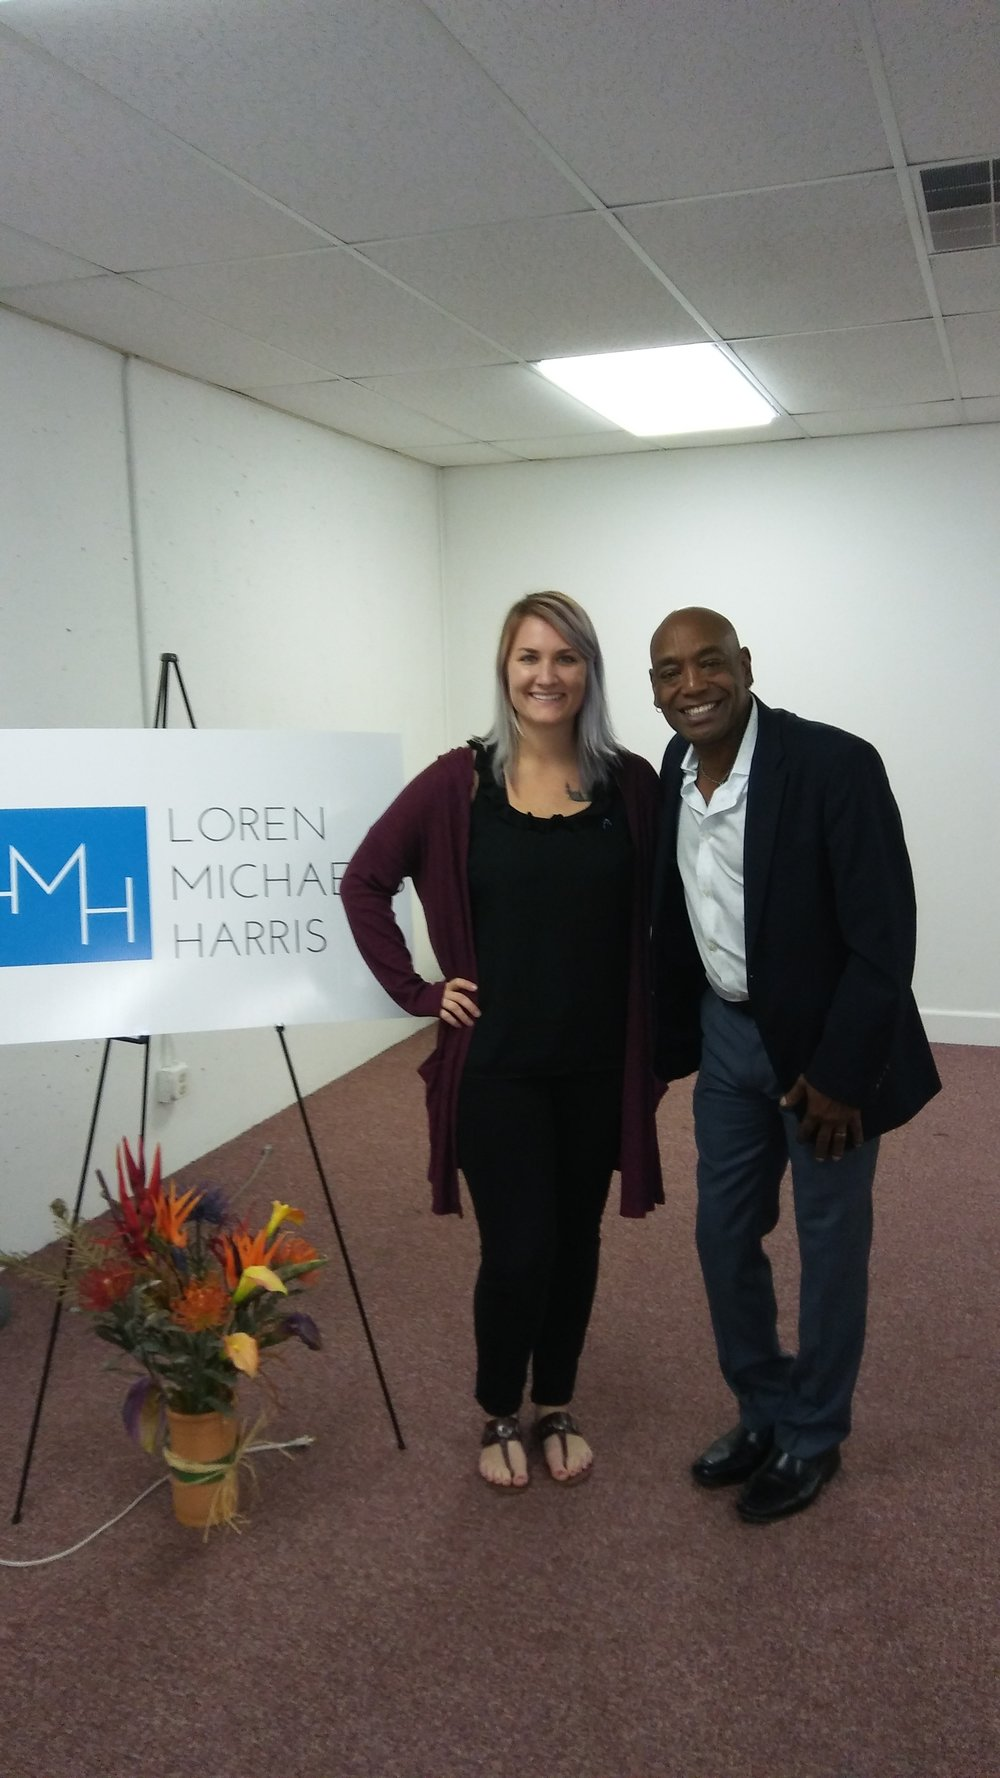 Loren Michaels Harris with Amelia Thomas of AIDS ASSIST OF NORTHERN INDIANA